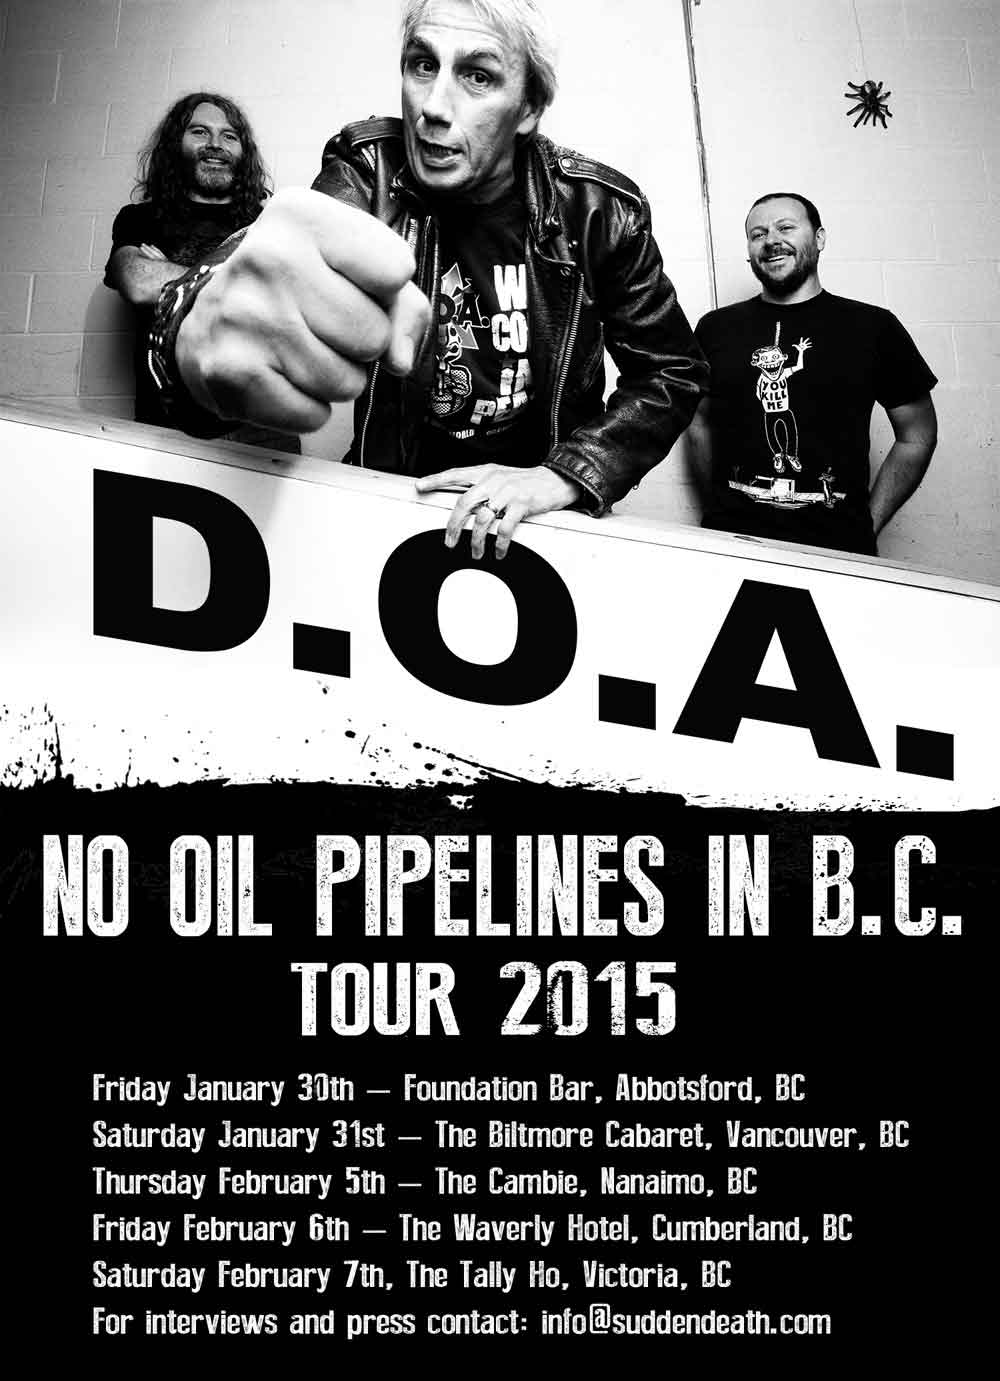 No Oil Pipelines in B.C. Tour 2015